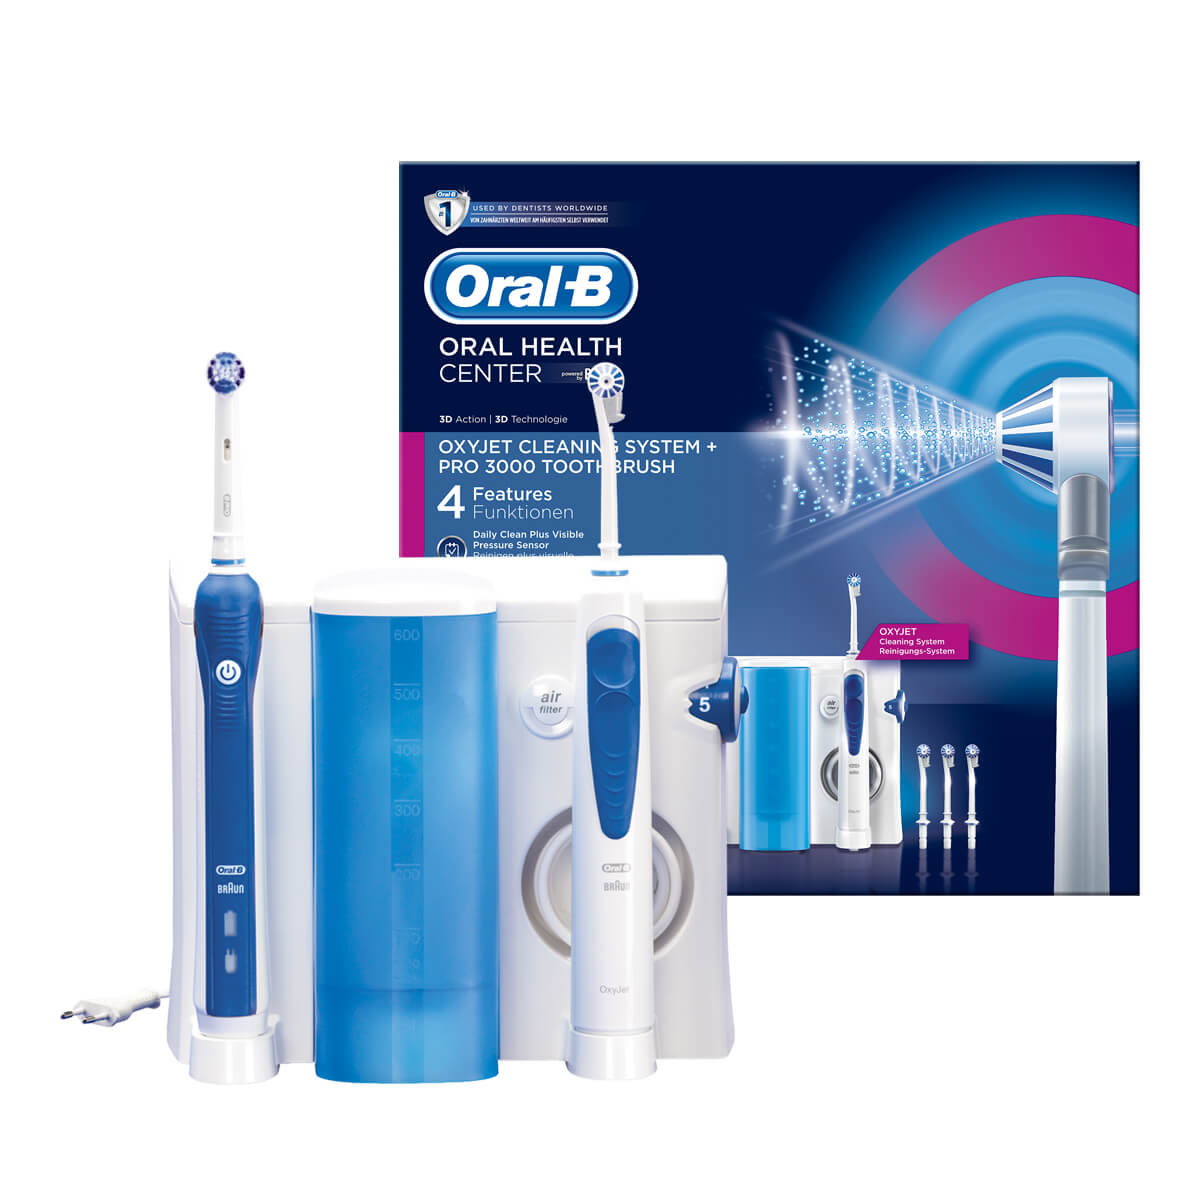 Oral-B Oral Health Center: Oxyjet Cleaning System + PRO 3000 Electric Toothbrush